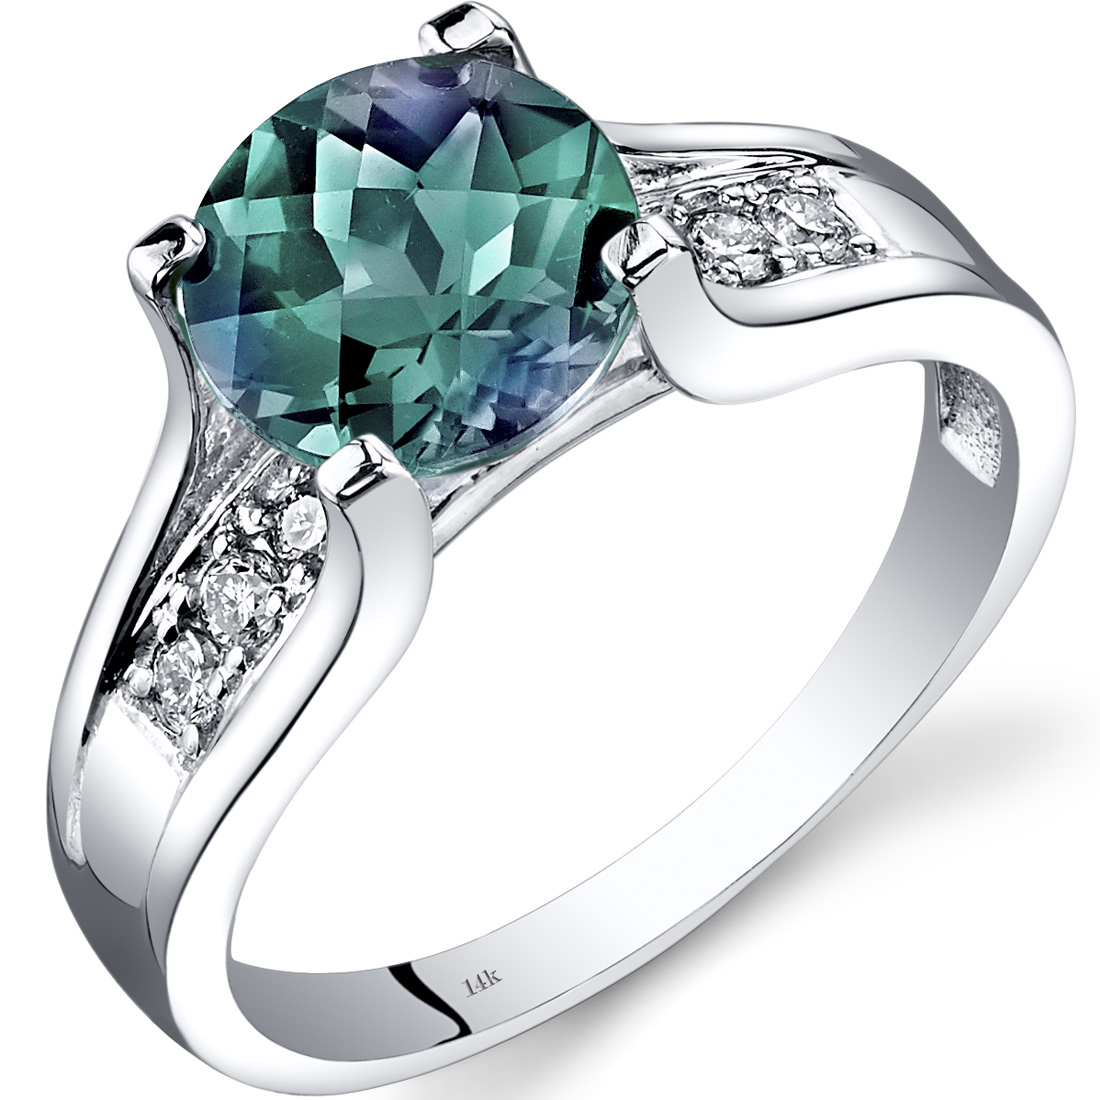 Peora 2.25 Carat T.G.W. Round-Cut Created Alexandrite and Diamond Accent 14kt White Gold Ring Size 7